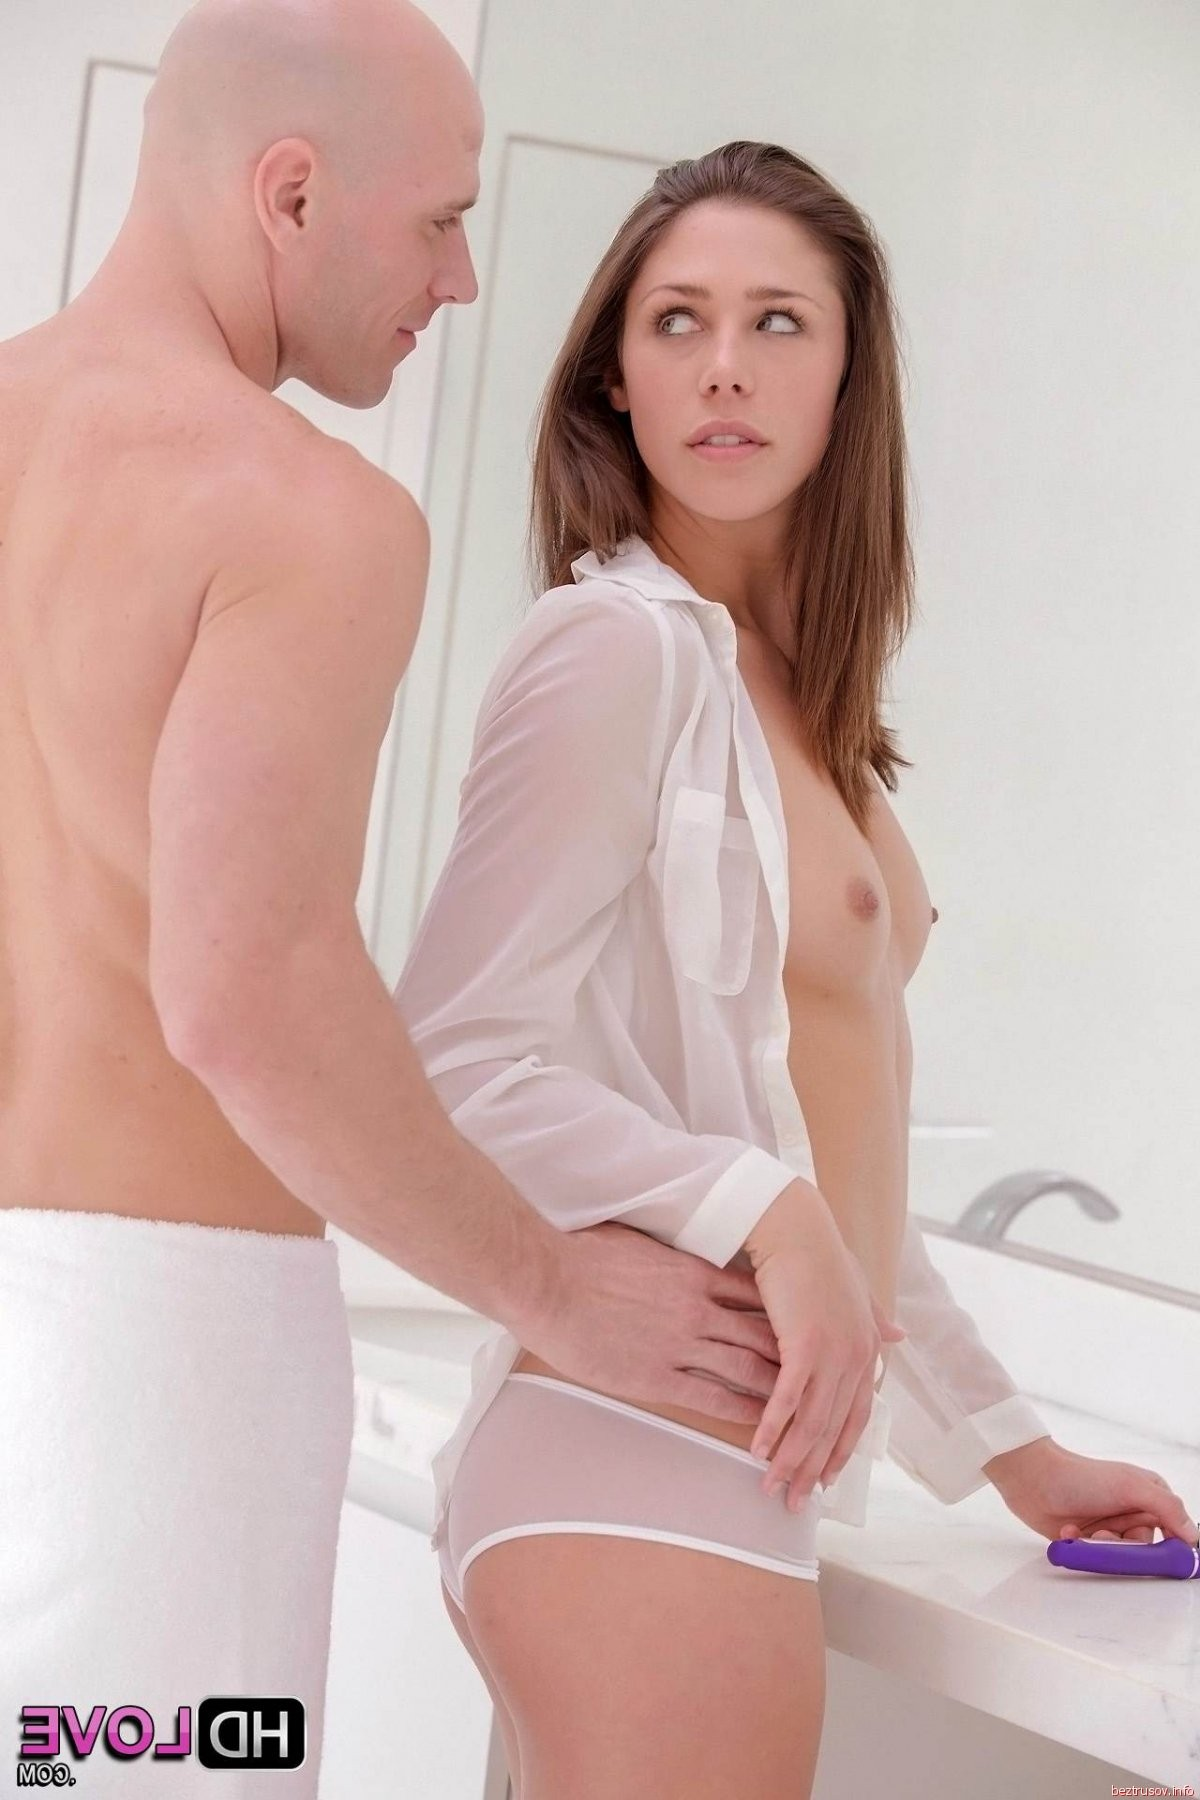 painful face anal amatures – Anal